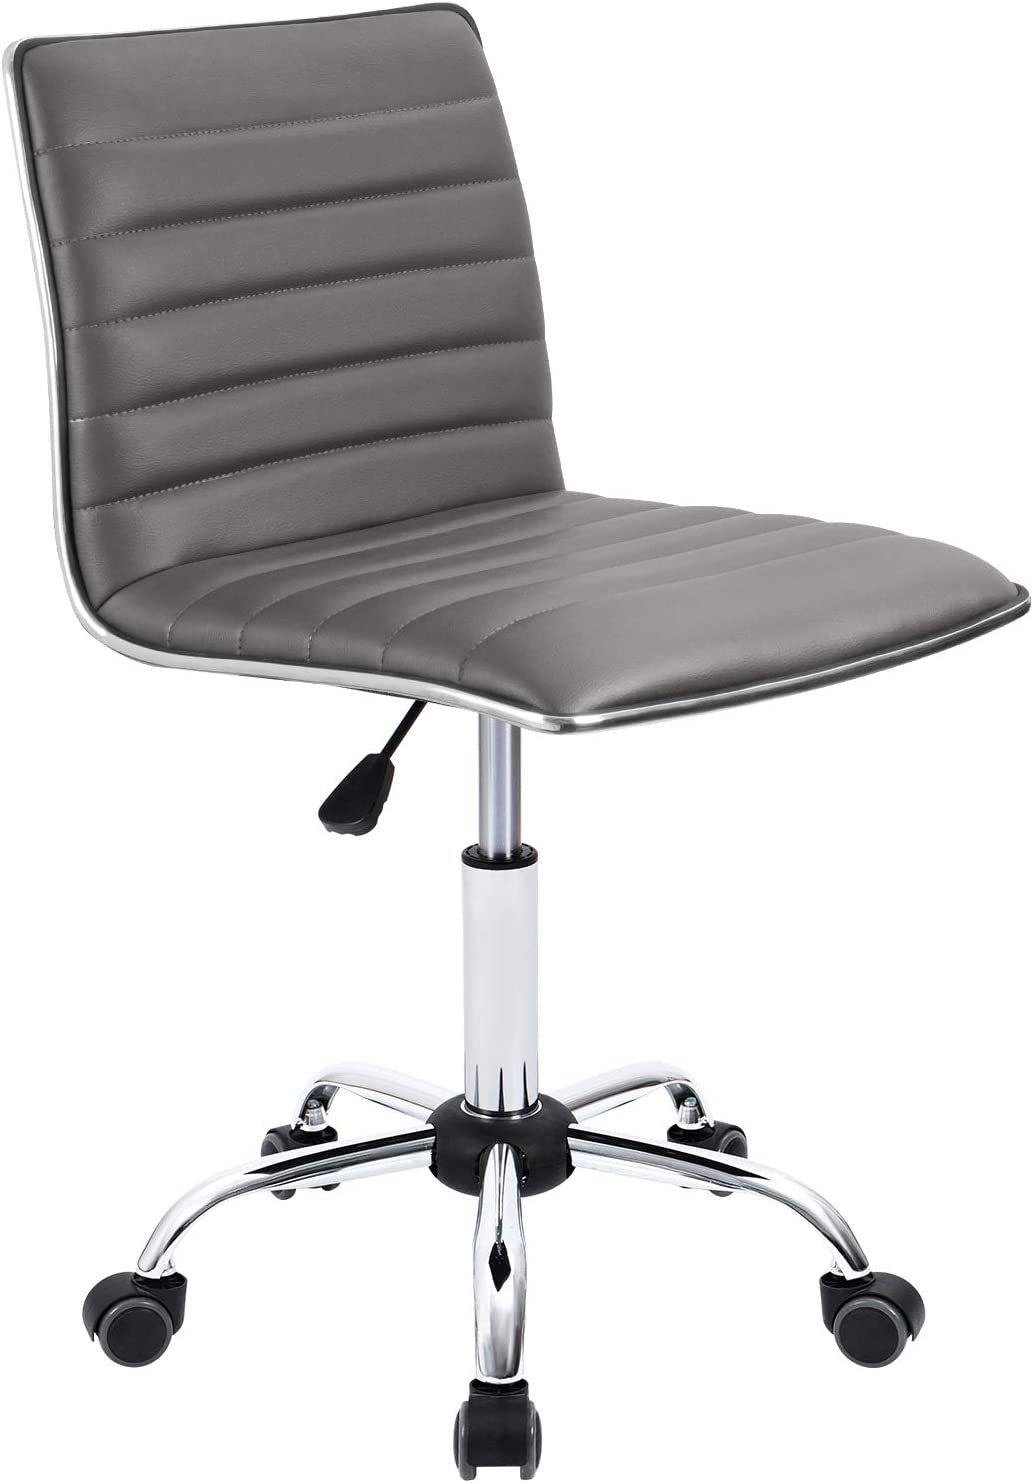 Furmax Mid Back Task Chair,Low Back Leather Swivel Office Chair,Computer Desk Chair Retro with Armless Ribbed Grey